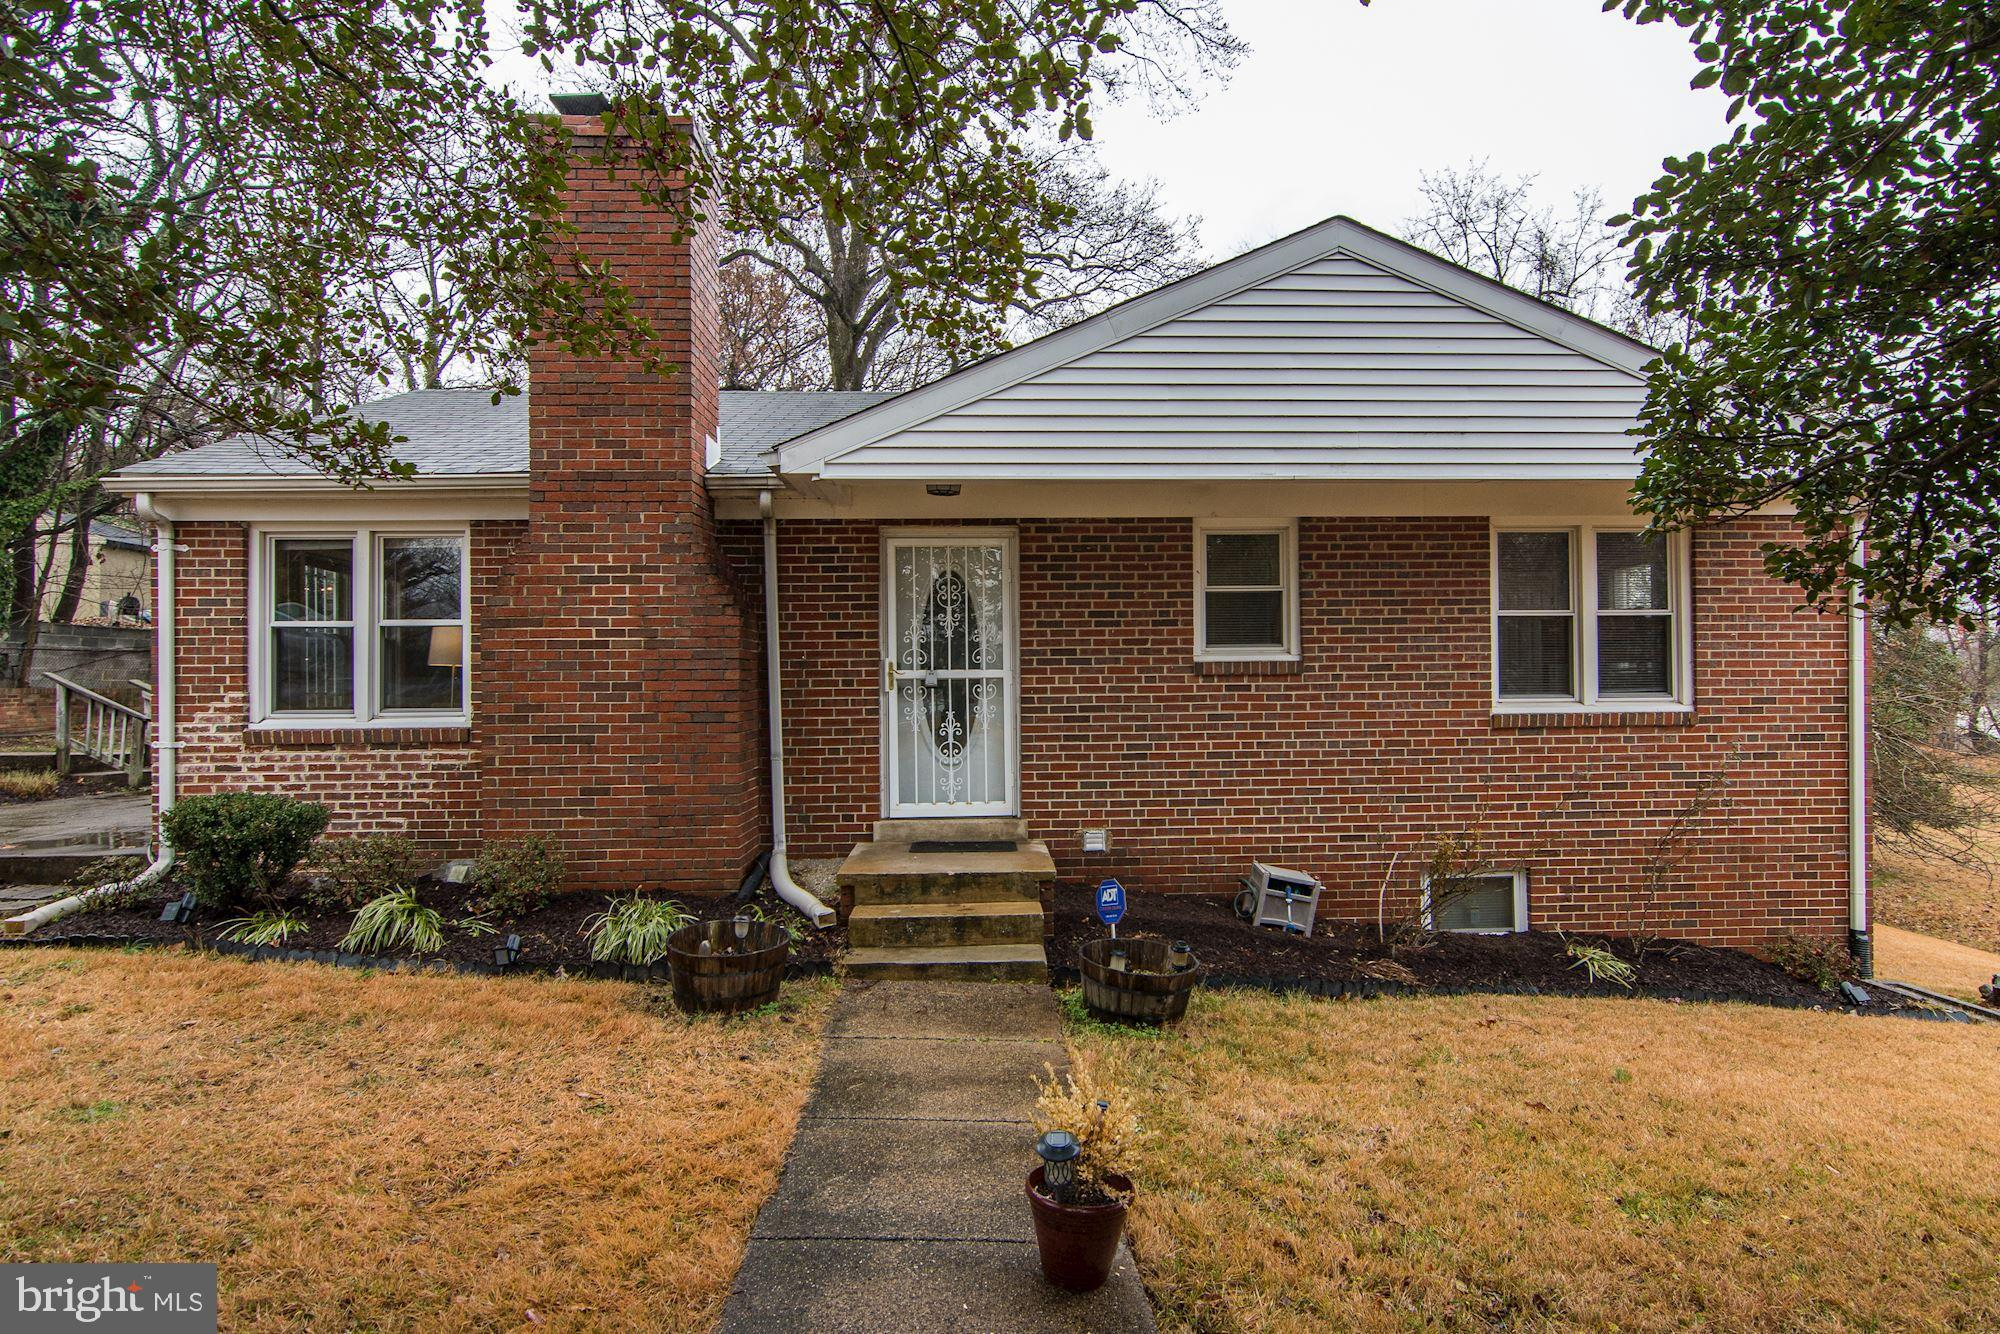 This all-brick  3 bedroom, 2 bath rambler is a true beauty! This home has gleaming hardwood floors,